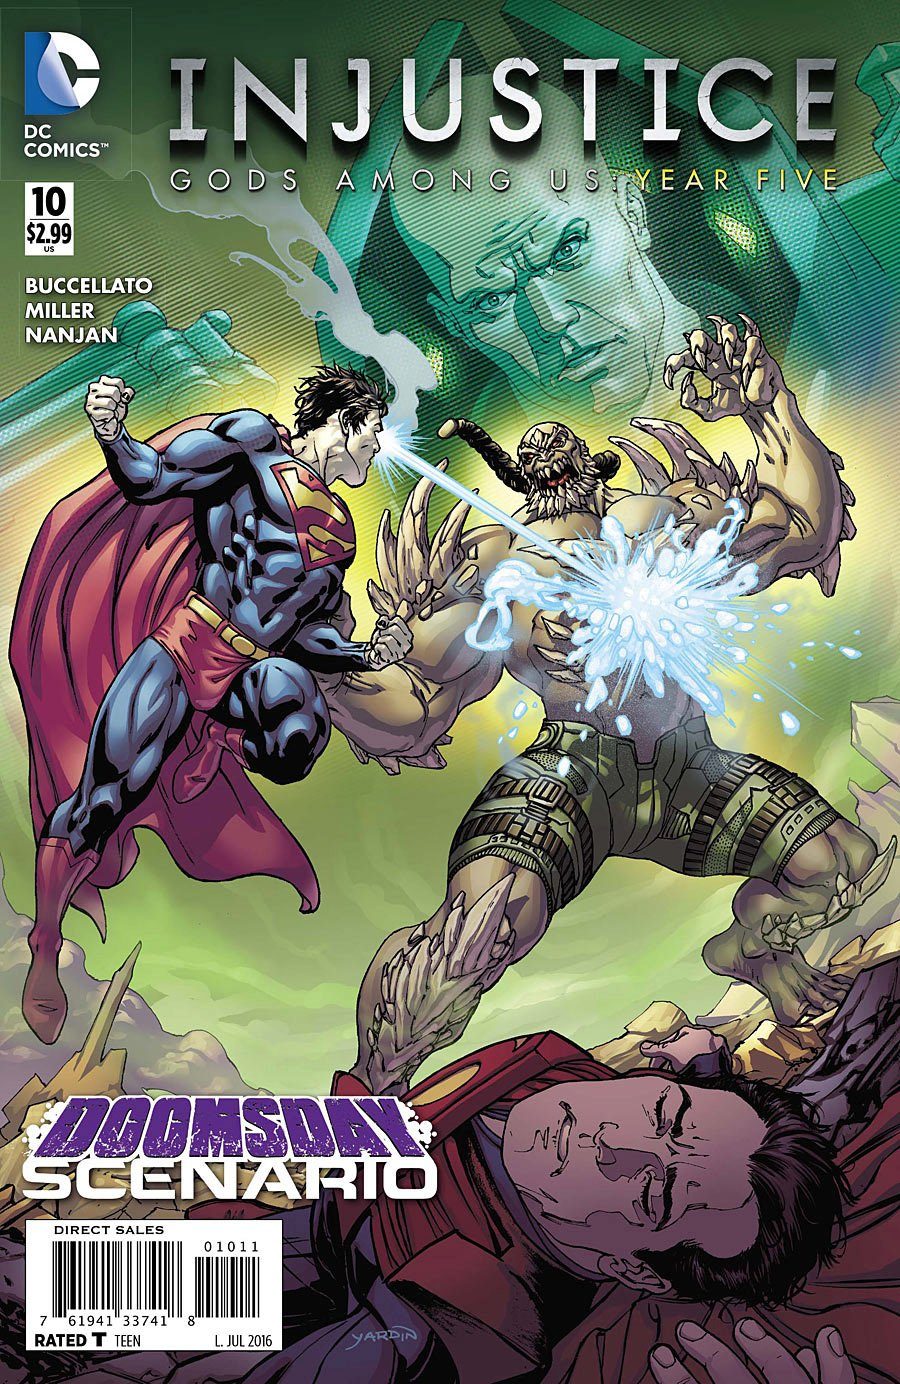 Injustice - Gods Among Us: Year Five 010 (July 2016)